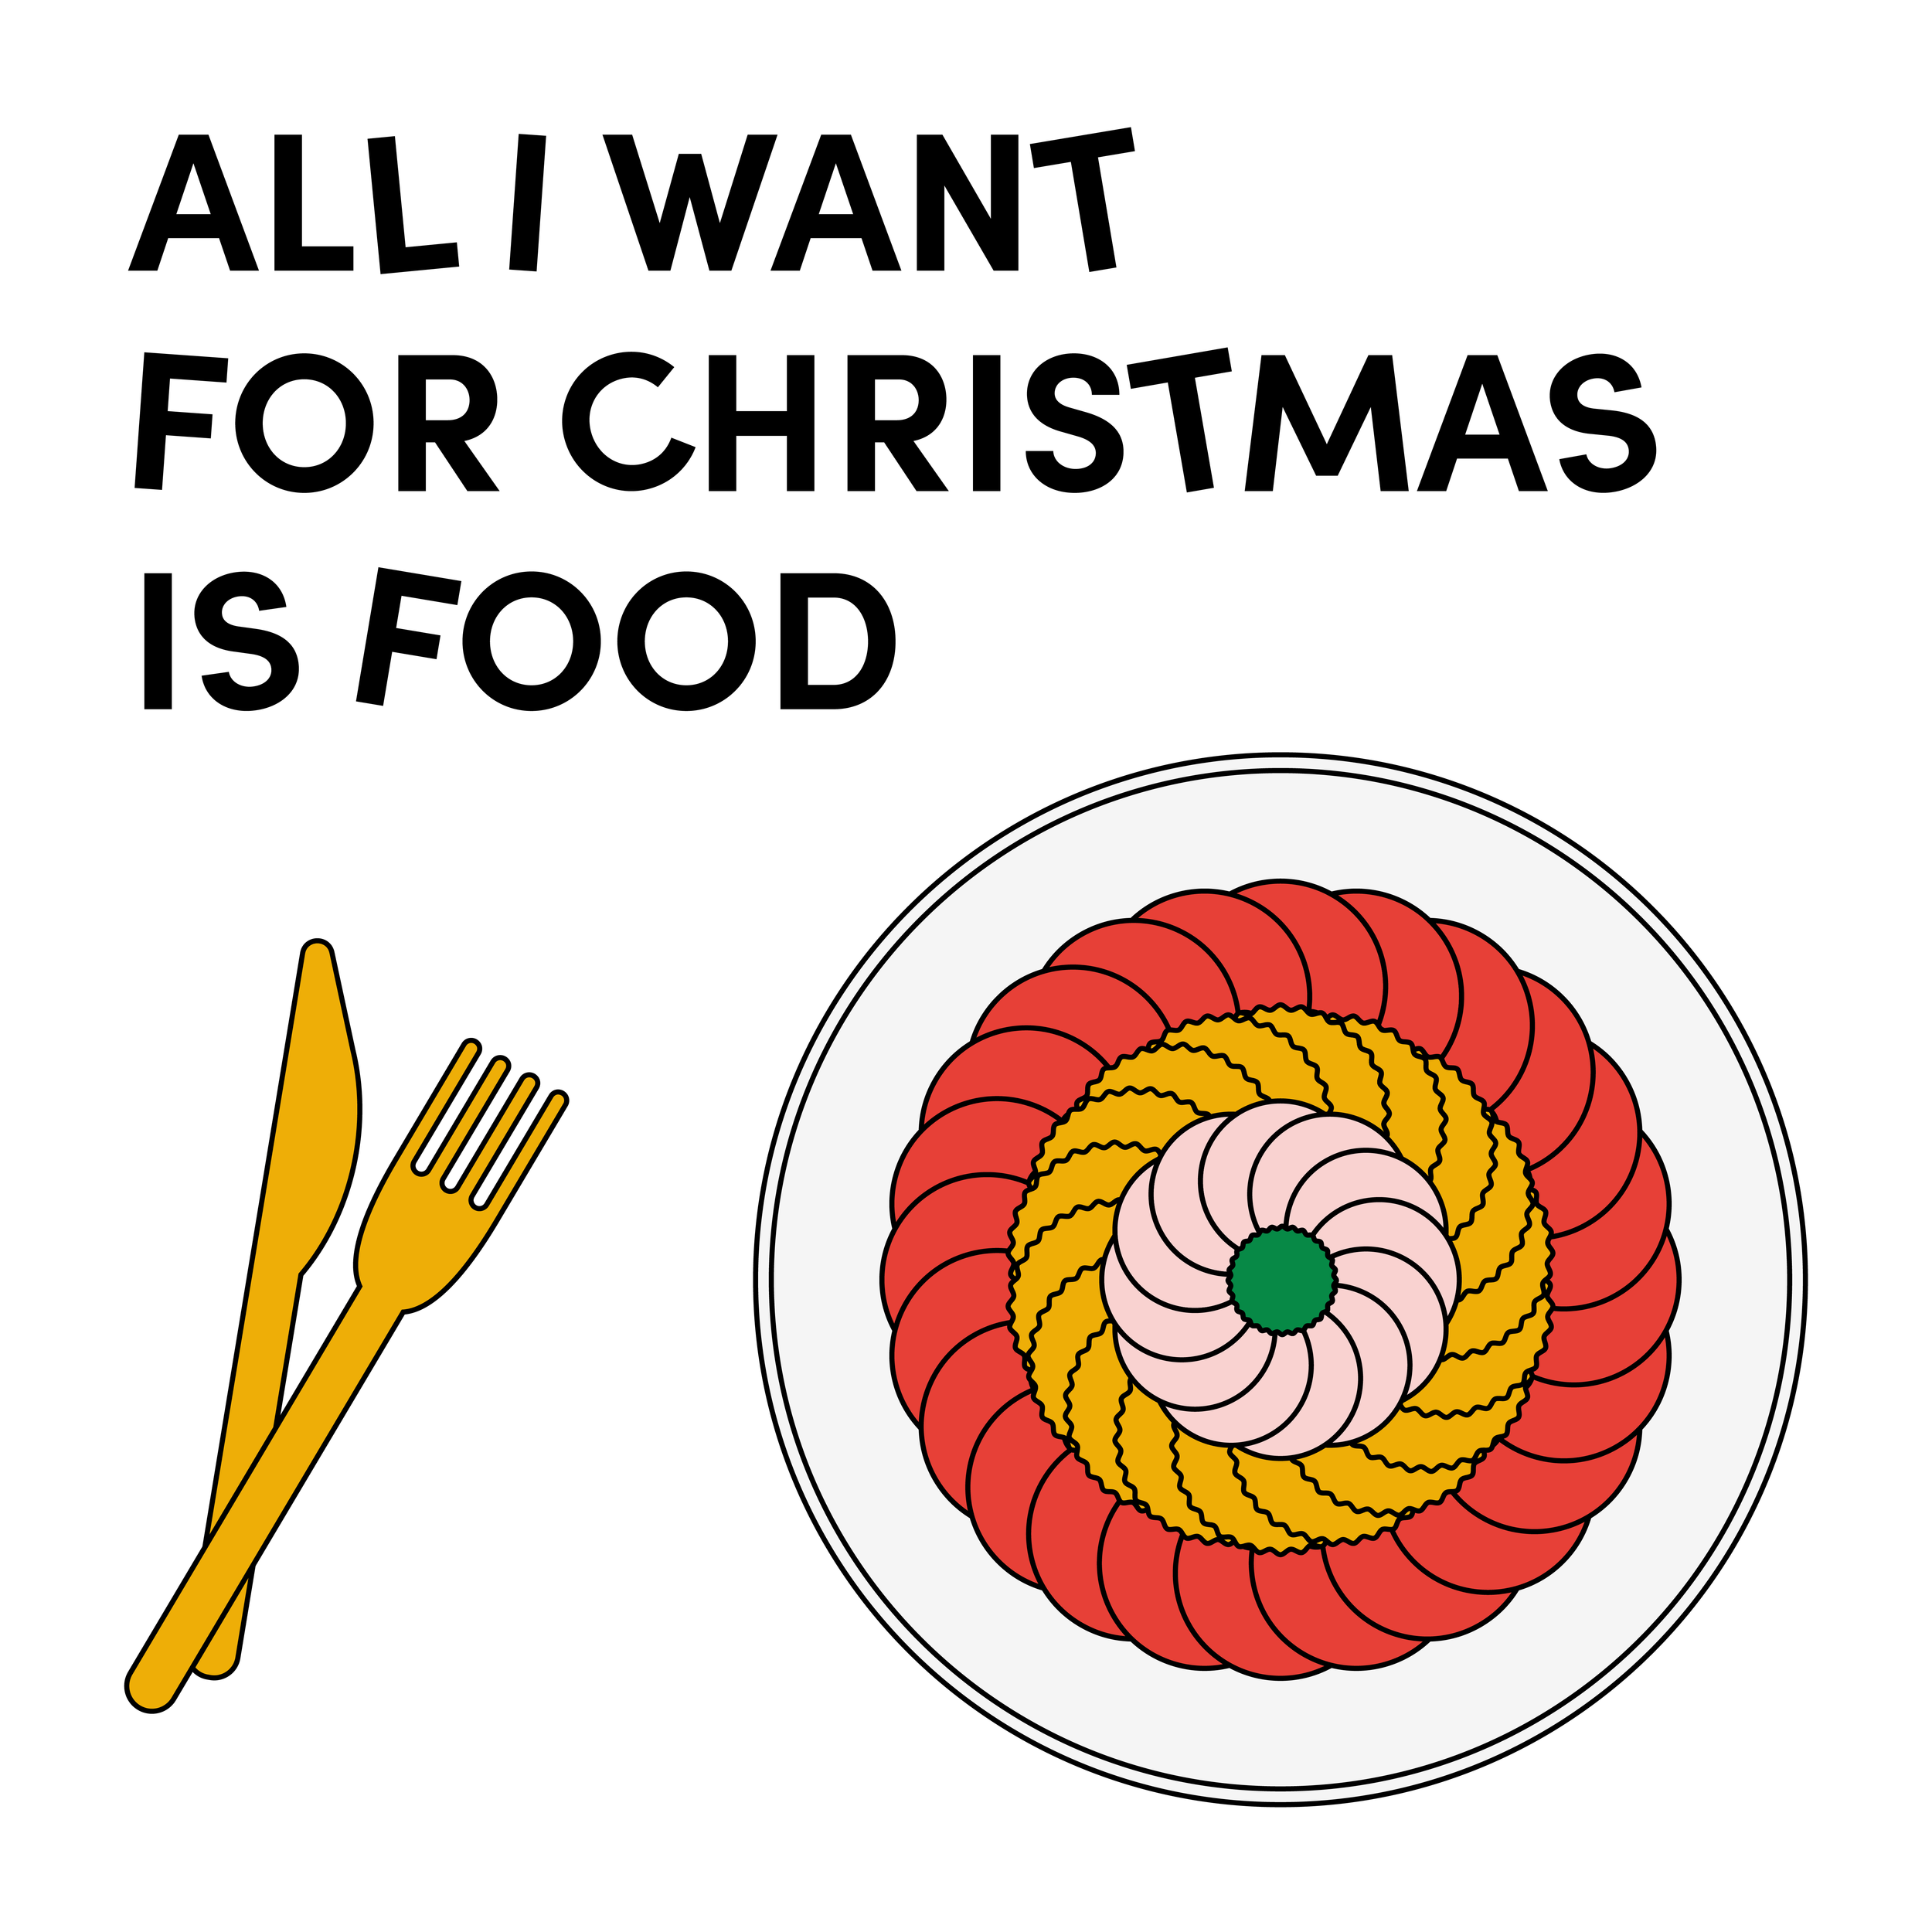 all_i_want_for_christmas_is_food_illustration_04.png